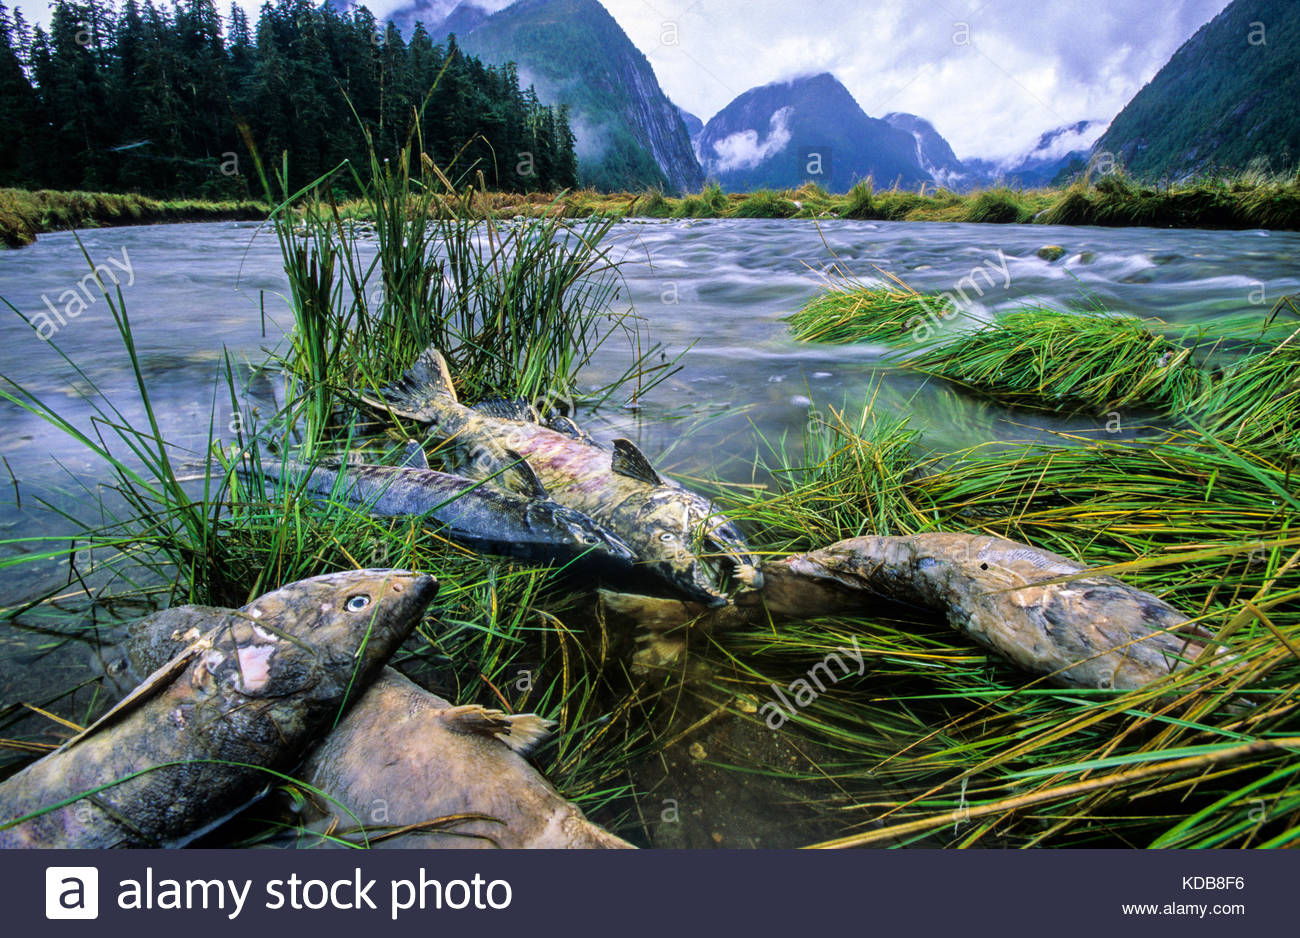 Spawned out chum salmon carcasses, Oncorhynchus keta. - Stock Image